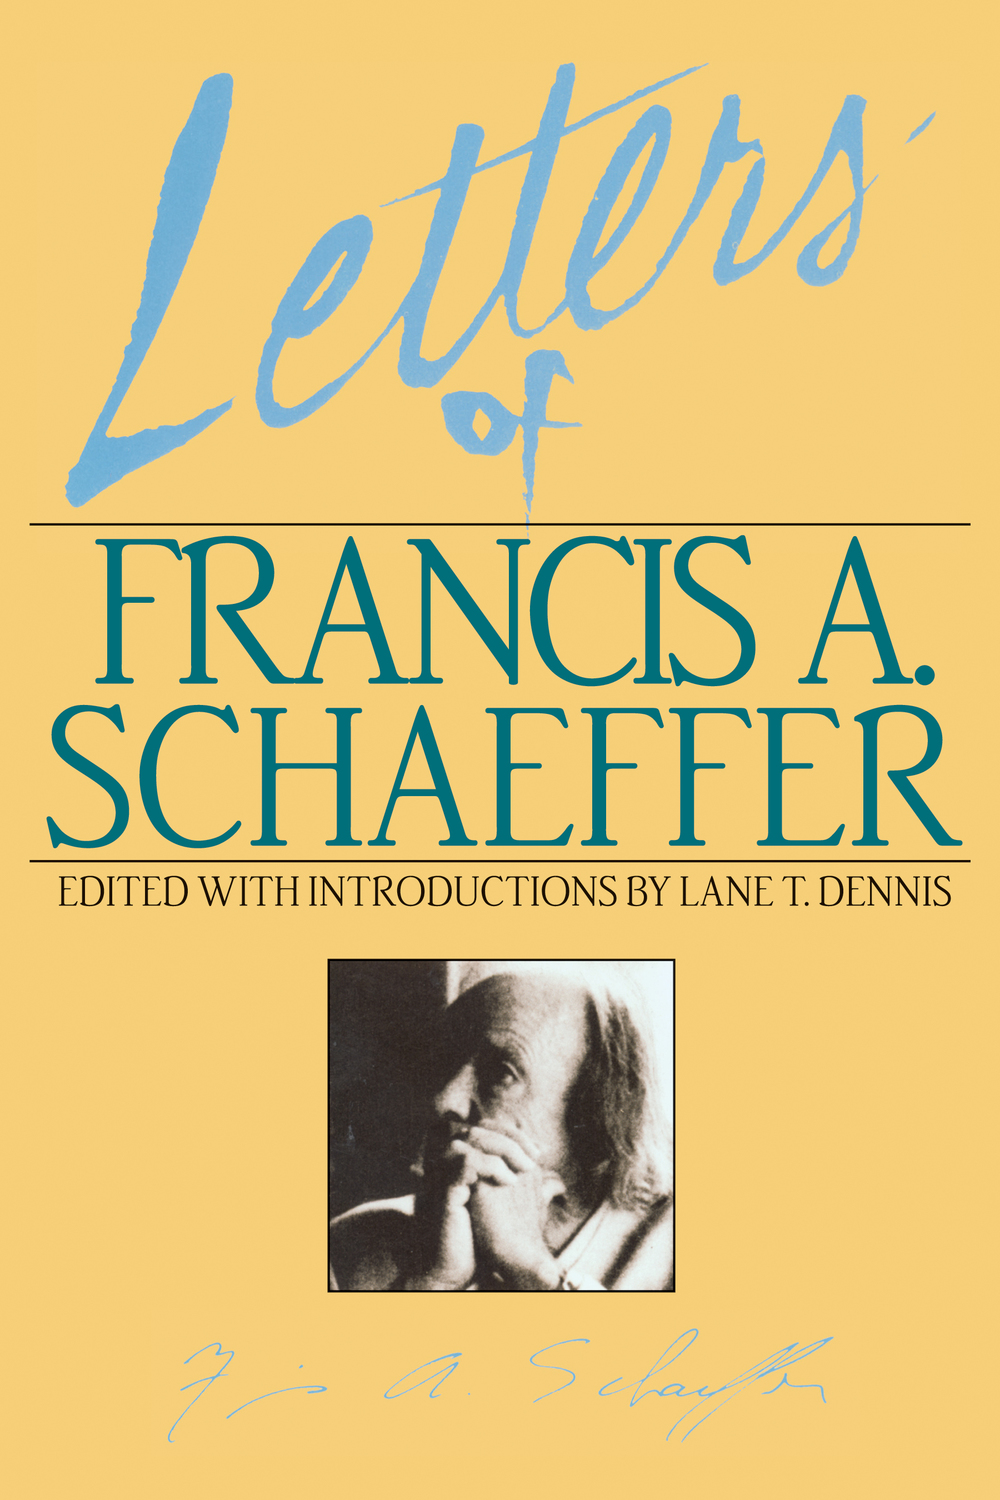 Letters of Francis A. Schaeffer